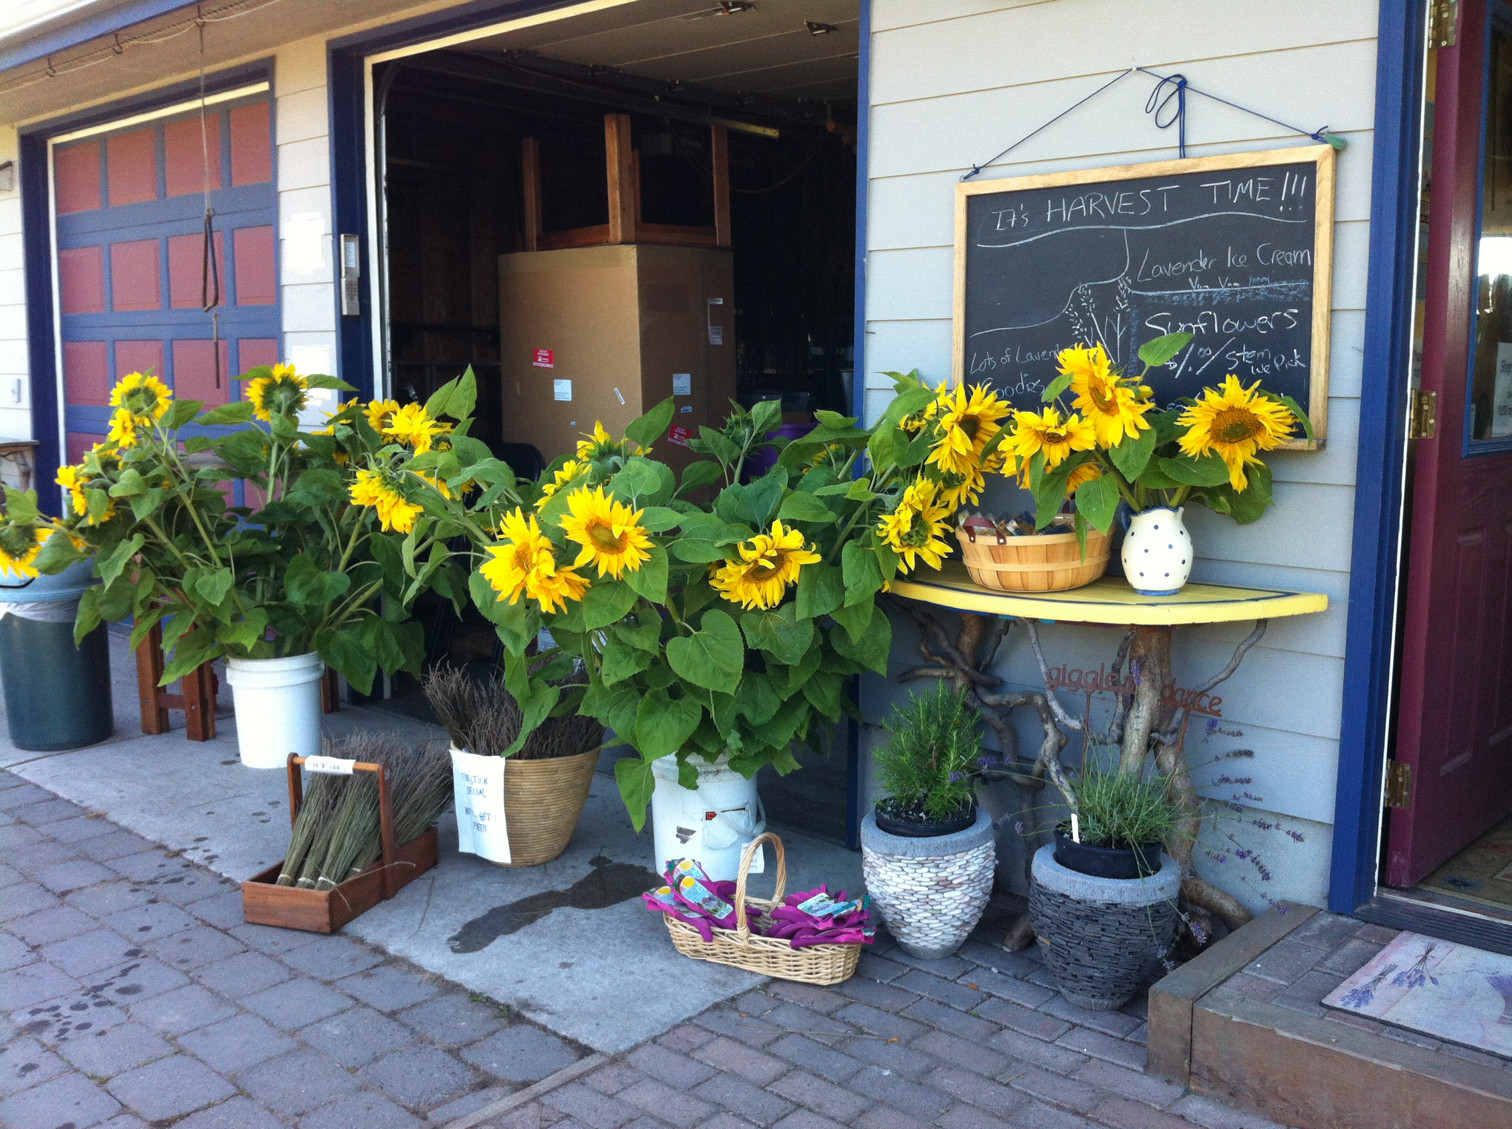 Sunflowers in front of shop